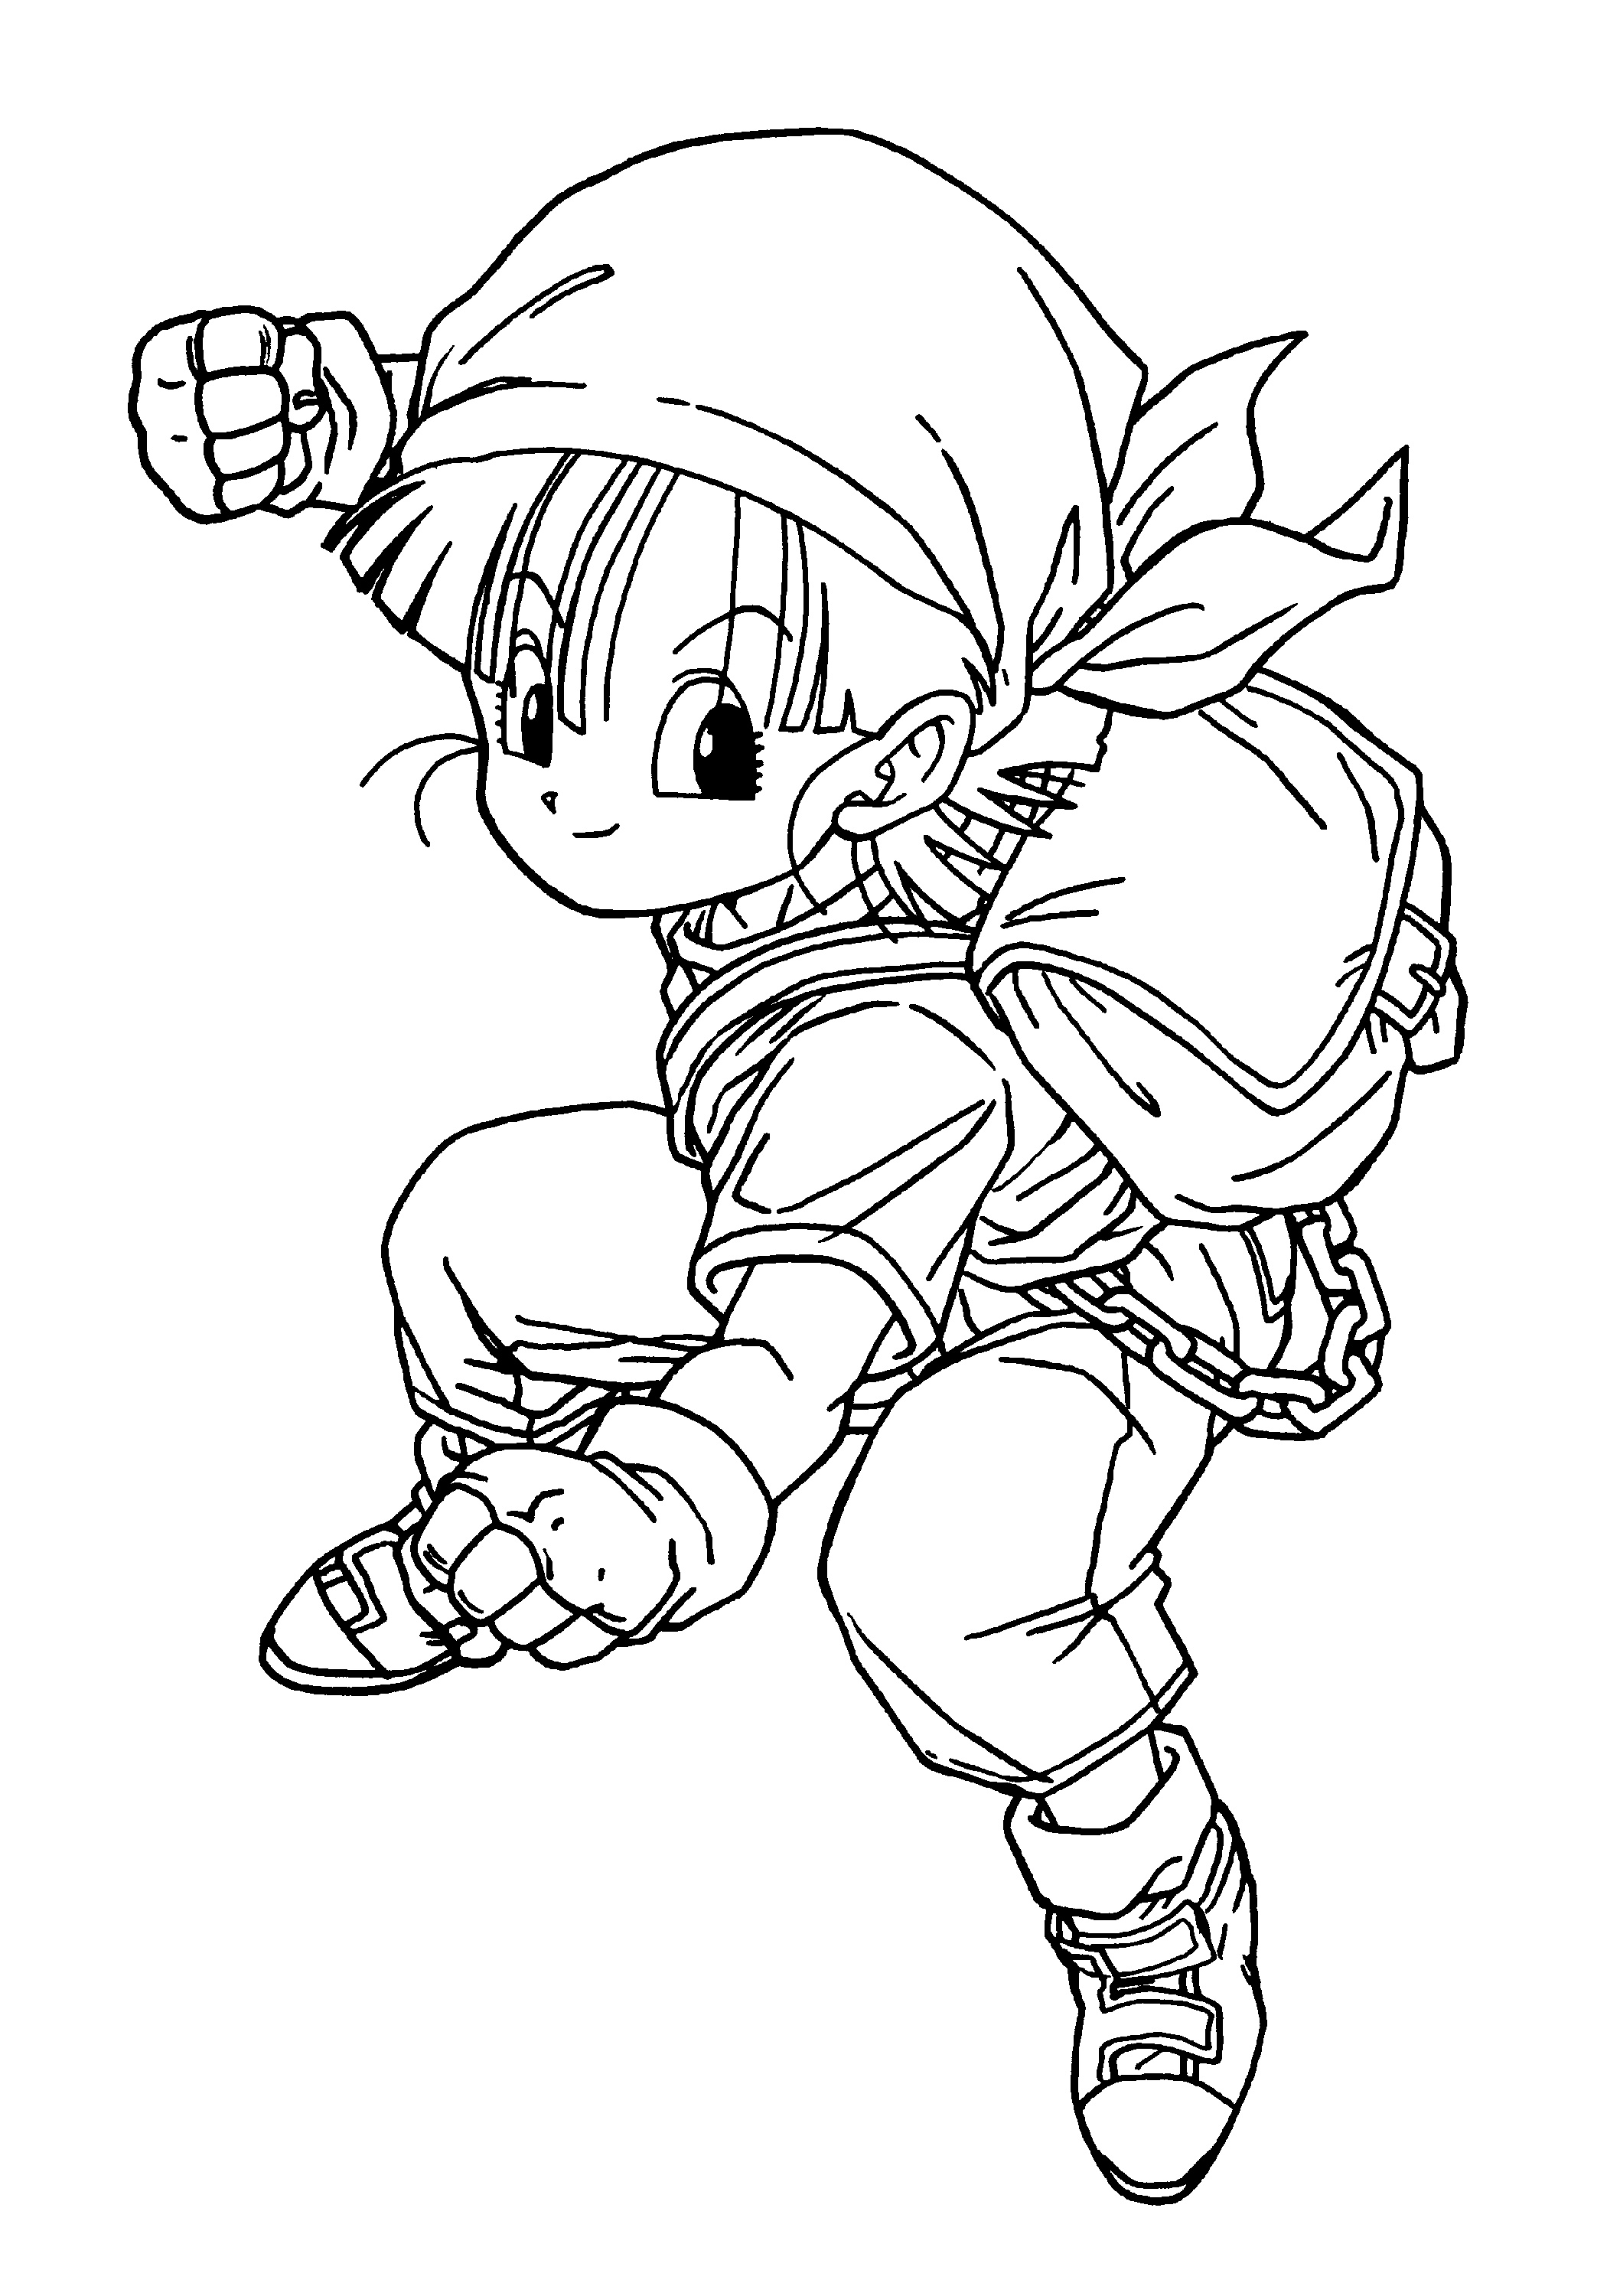 dragon ball coloring pictures dragon ball z coloring pages cell k5 worksheets pictures ball dragon coloring